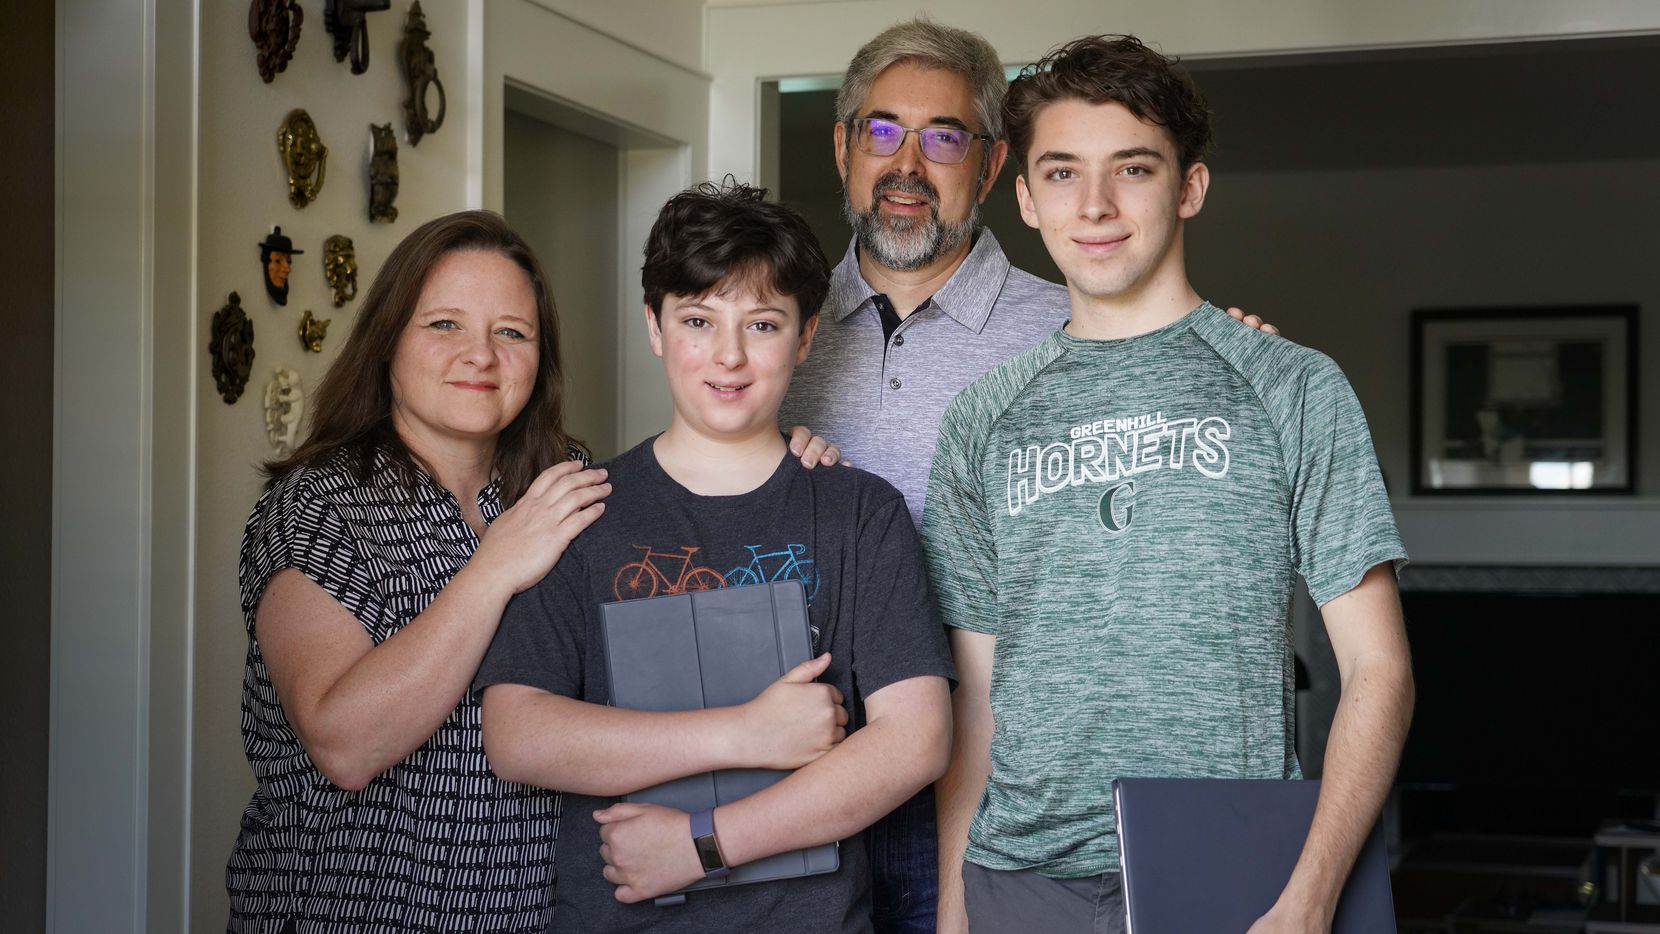 Rebekah and Ben Newman (left and back) with their sons Miles, 12 (center), and Ethan, 18 (right), photographed at their home on Tuesday, June 16, 2020, in Dallas. (Smiley N. Pool/The Dallas Morning News)